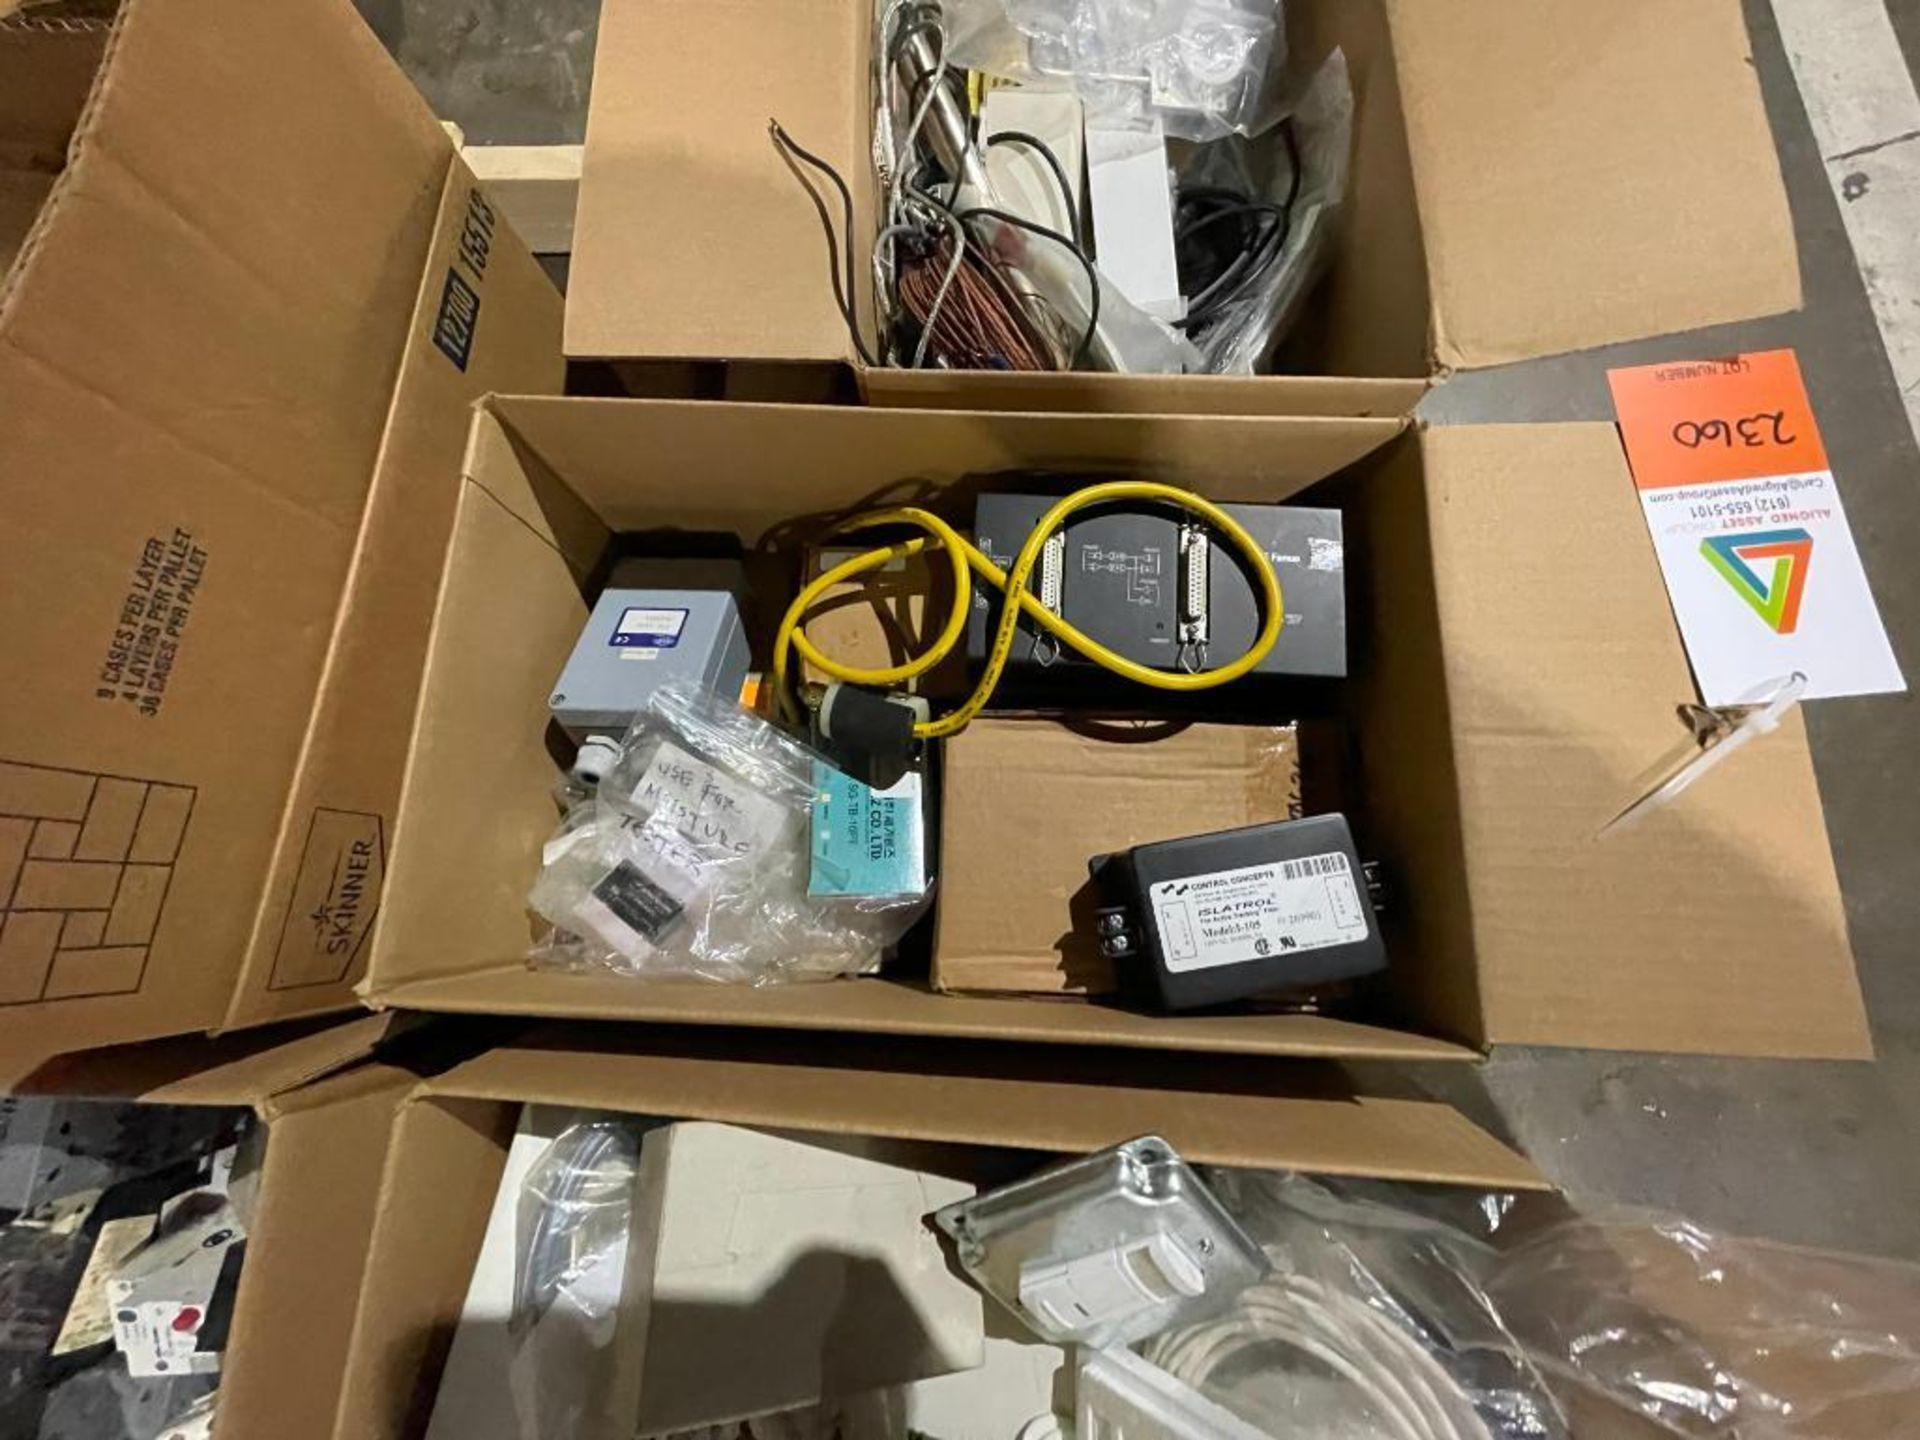 pallet of electrical switches - Image 4 of 10